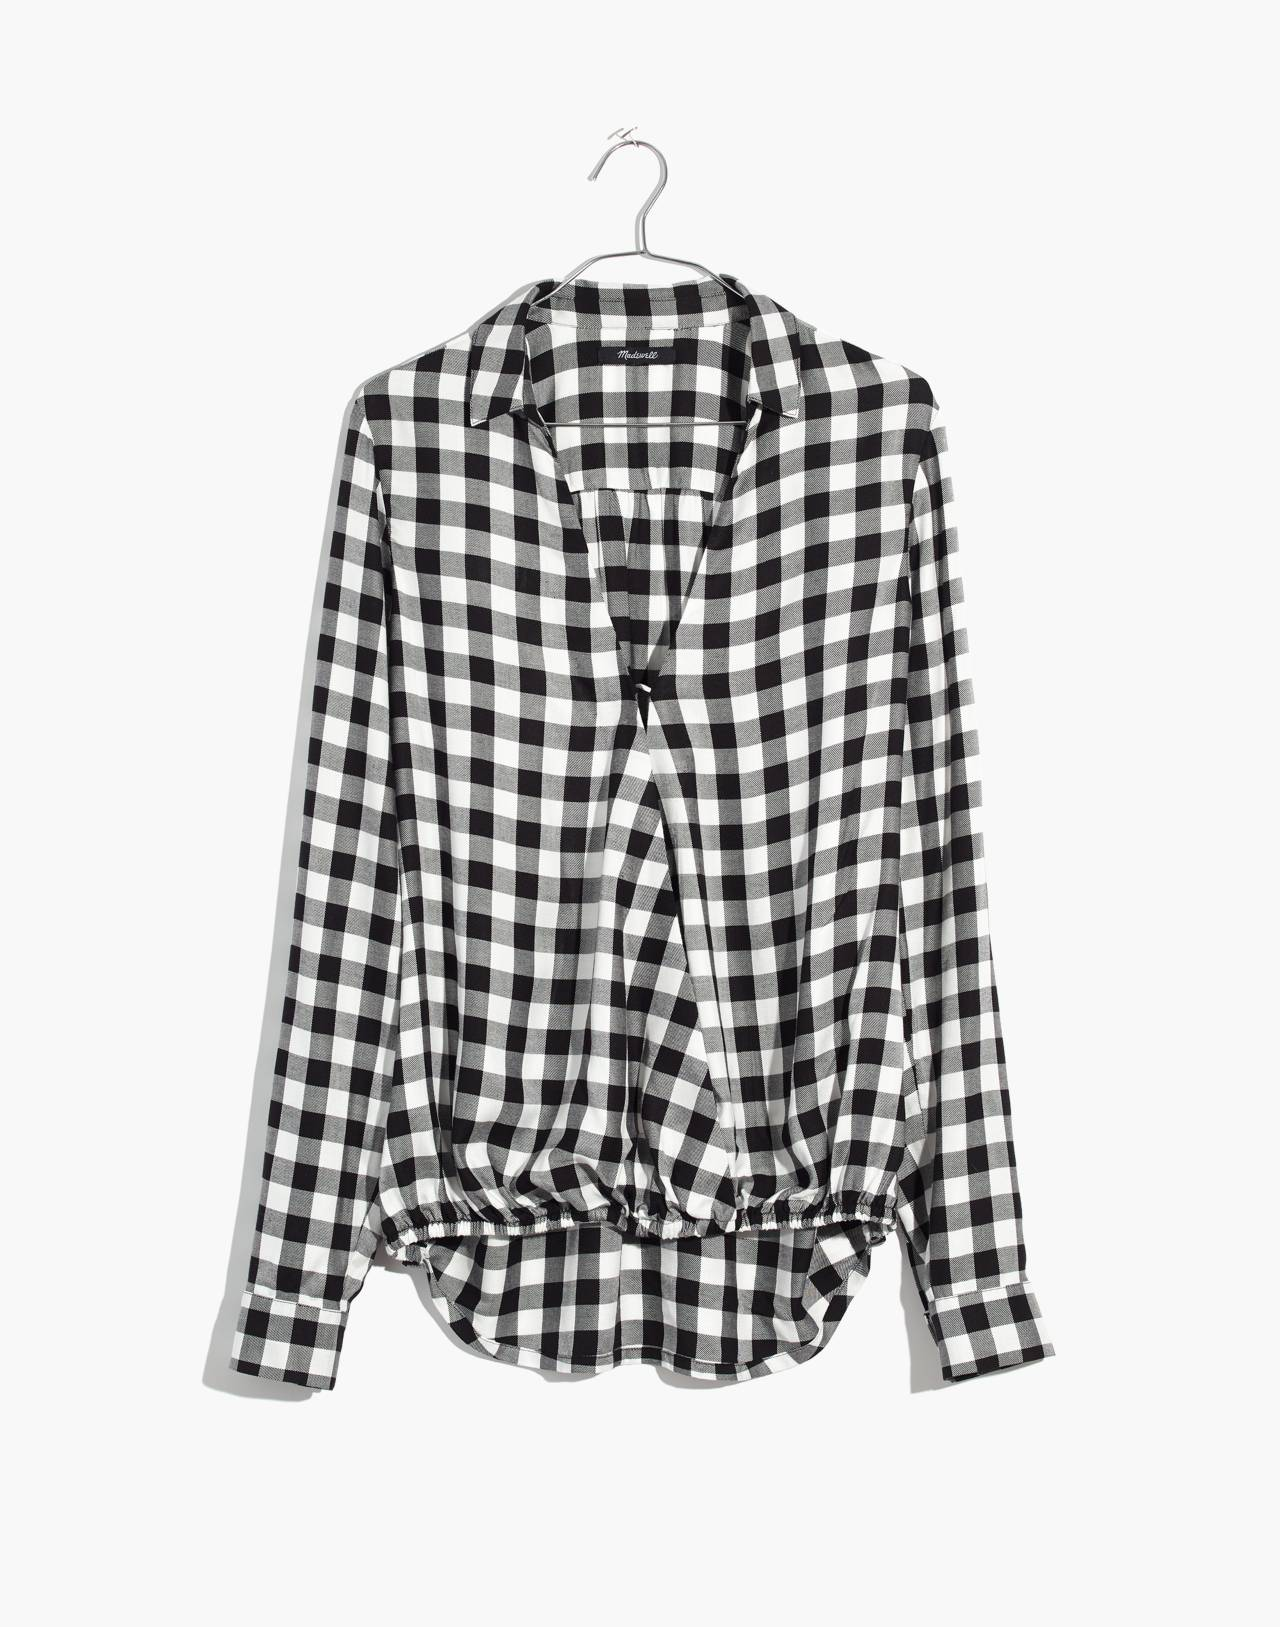 Wrap-Front Shirt in Buffalo Check in true black image 4